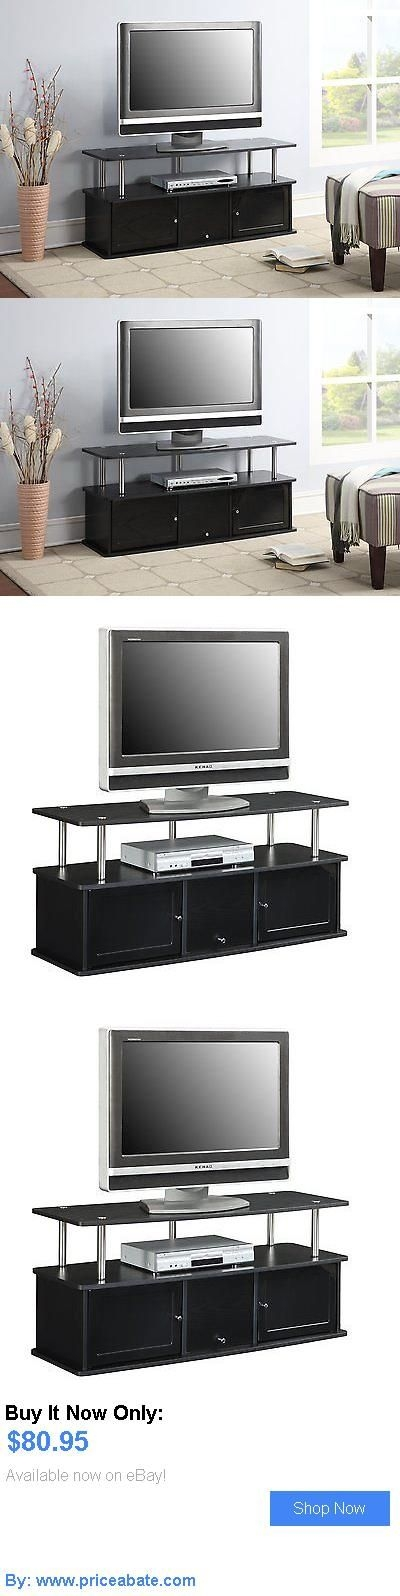 Amazing Fashionable Modern TV Stands For 60 Inch TVs Regarding Best 25 50 Inch Tv Stand Ideas On Pinterest 60 Inch Tv Stand (Image 1 of 50)